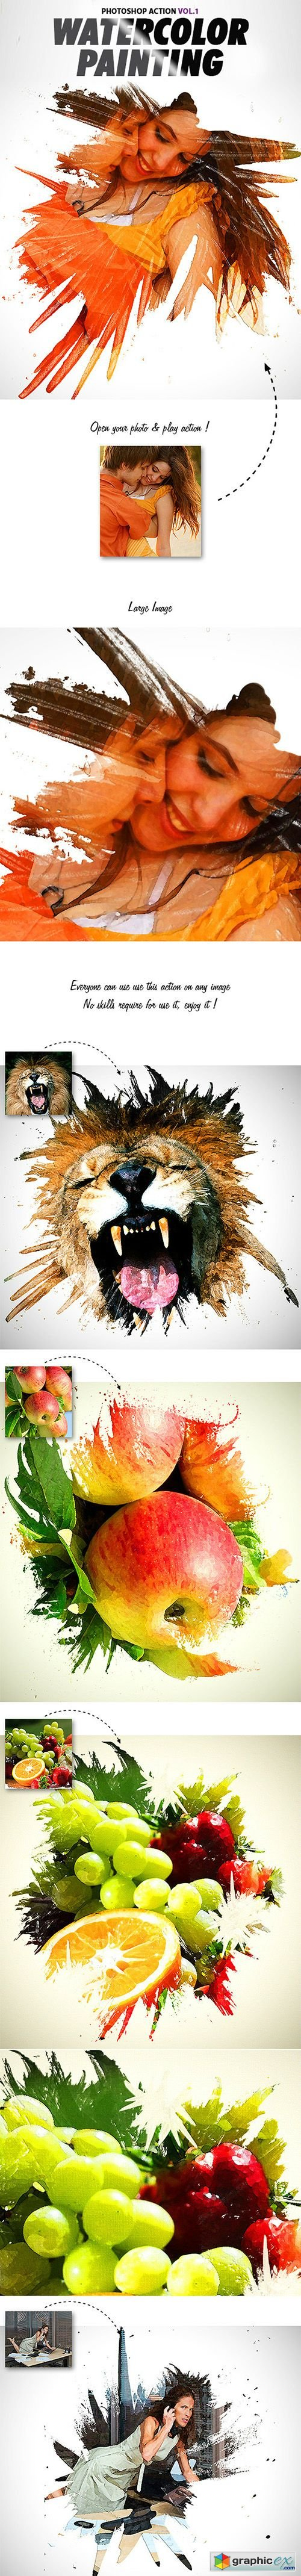 Watercolor Painting Vol1 Photoshop Action